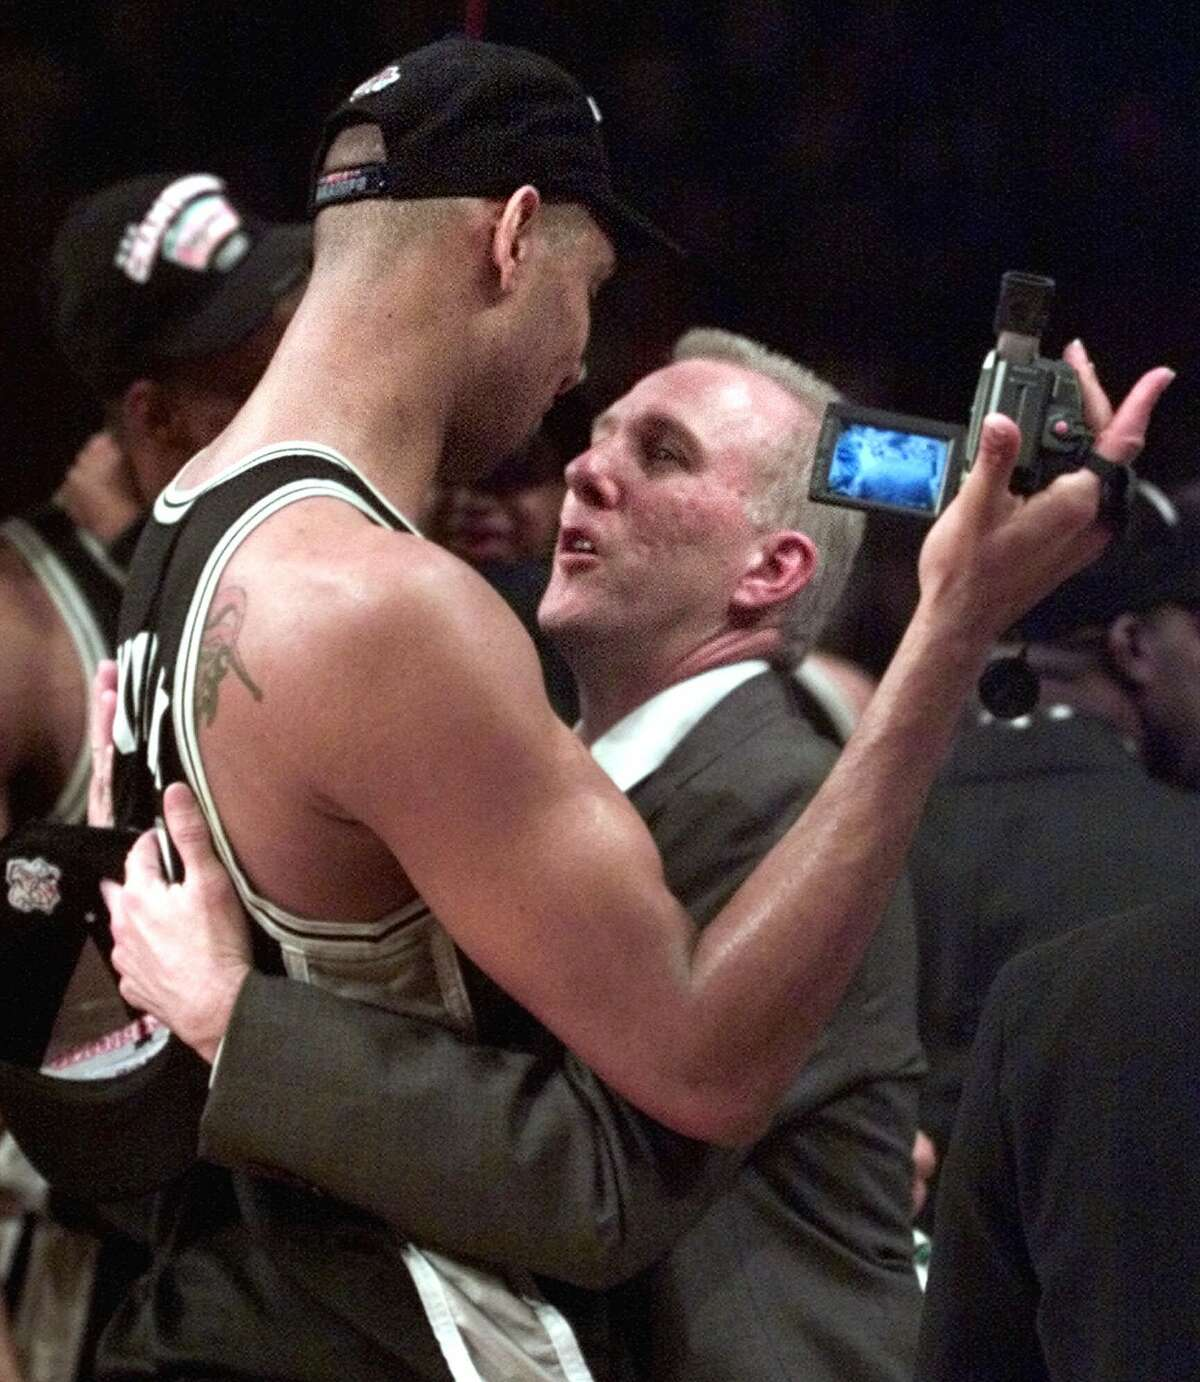 The Spurs' Tim Duncan (left) and coach Gregg Popovich celebrate after defeating the New York Knicks 78-77 to clinch the championship in Game 5 of the 1999 NBA Finals on June 25, 1999, at New York's Madison Square Garden.